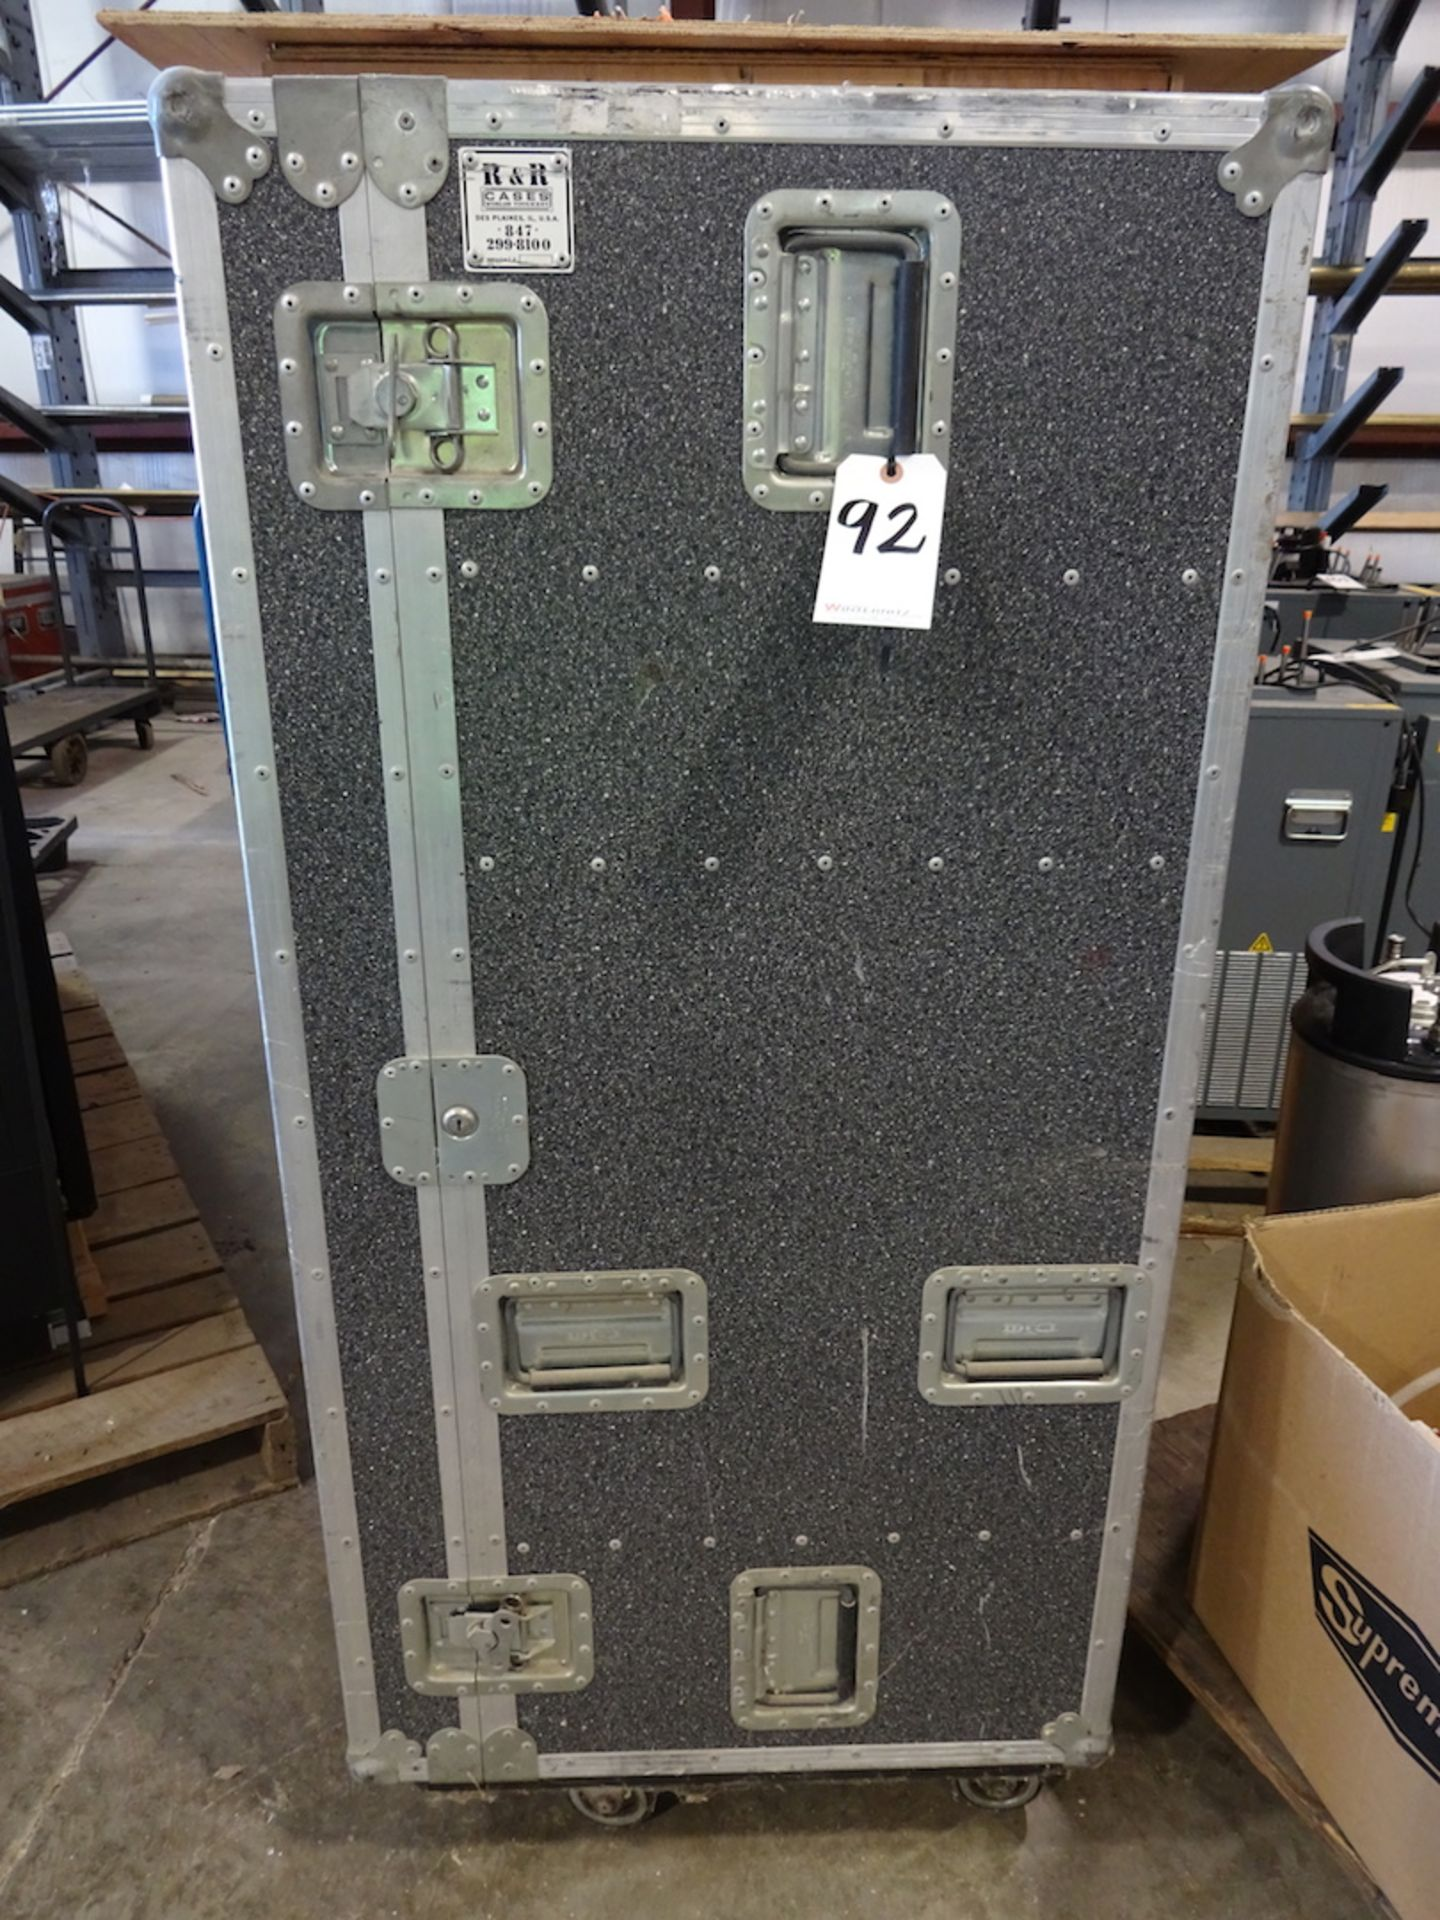 Lot 92 - R&R Portable Shipping Case